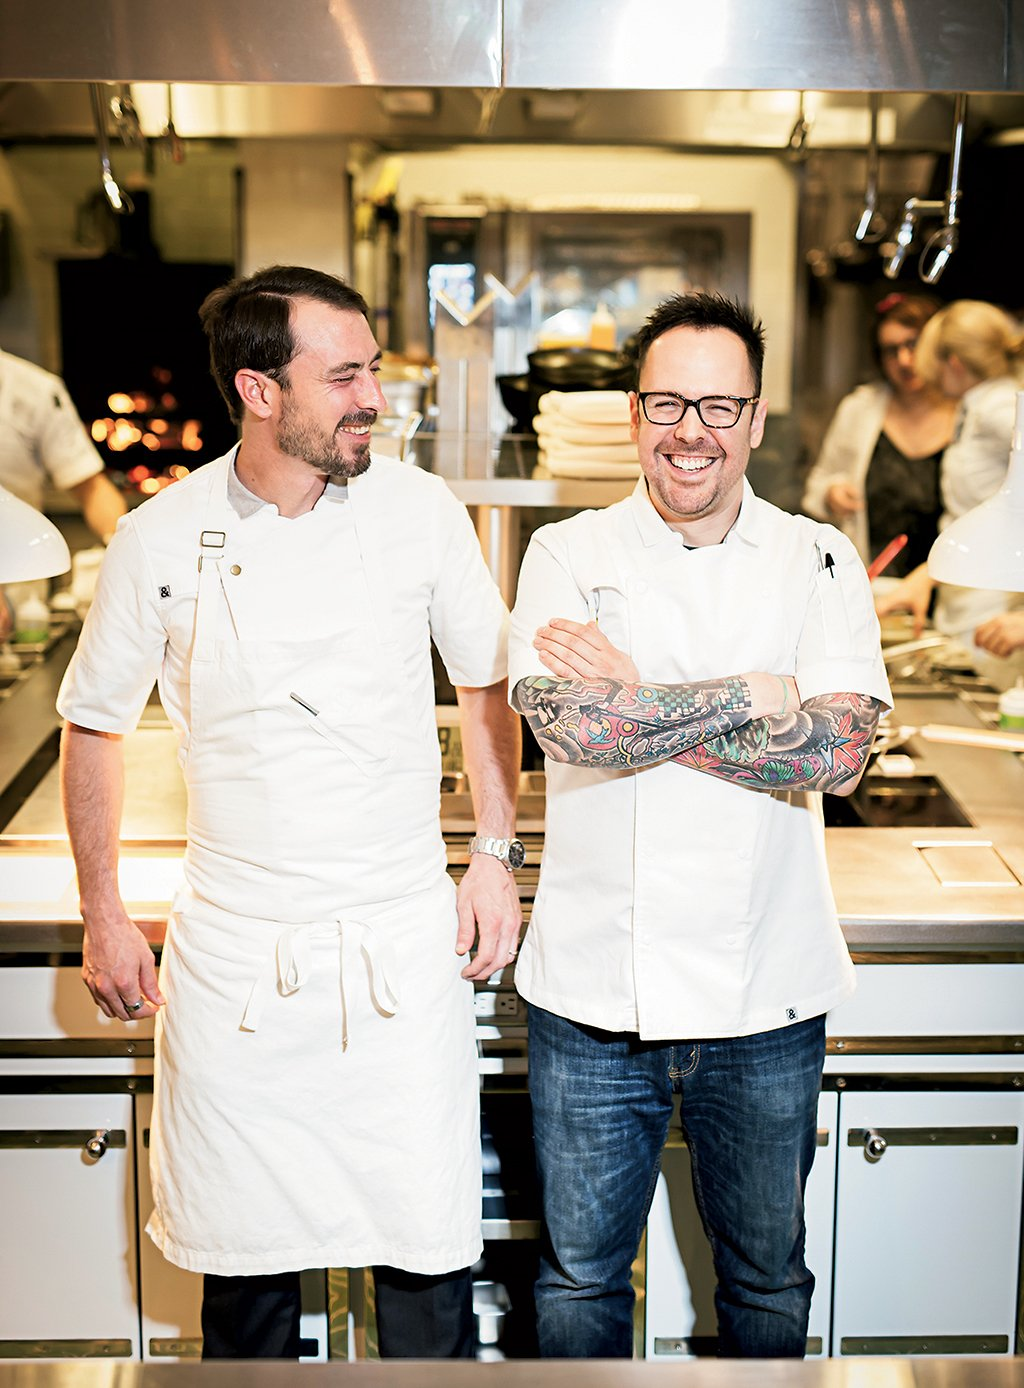 Chef/owner Aaron Silverman (right) and head chef Scott Muns turn out daring dishes, followed by plates that register as pure comfort. Photograph by Scott Suchman.